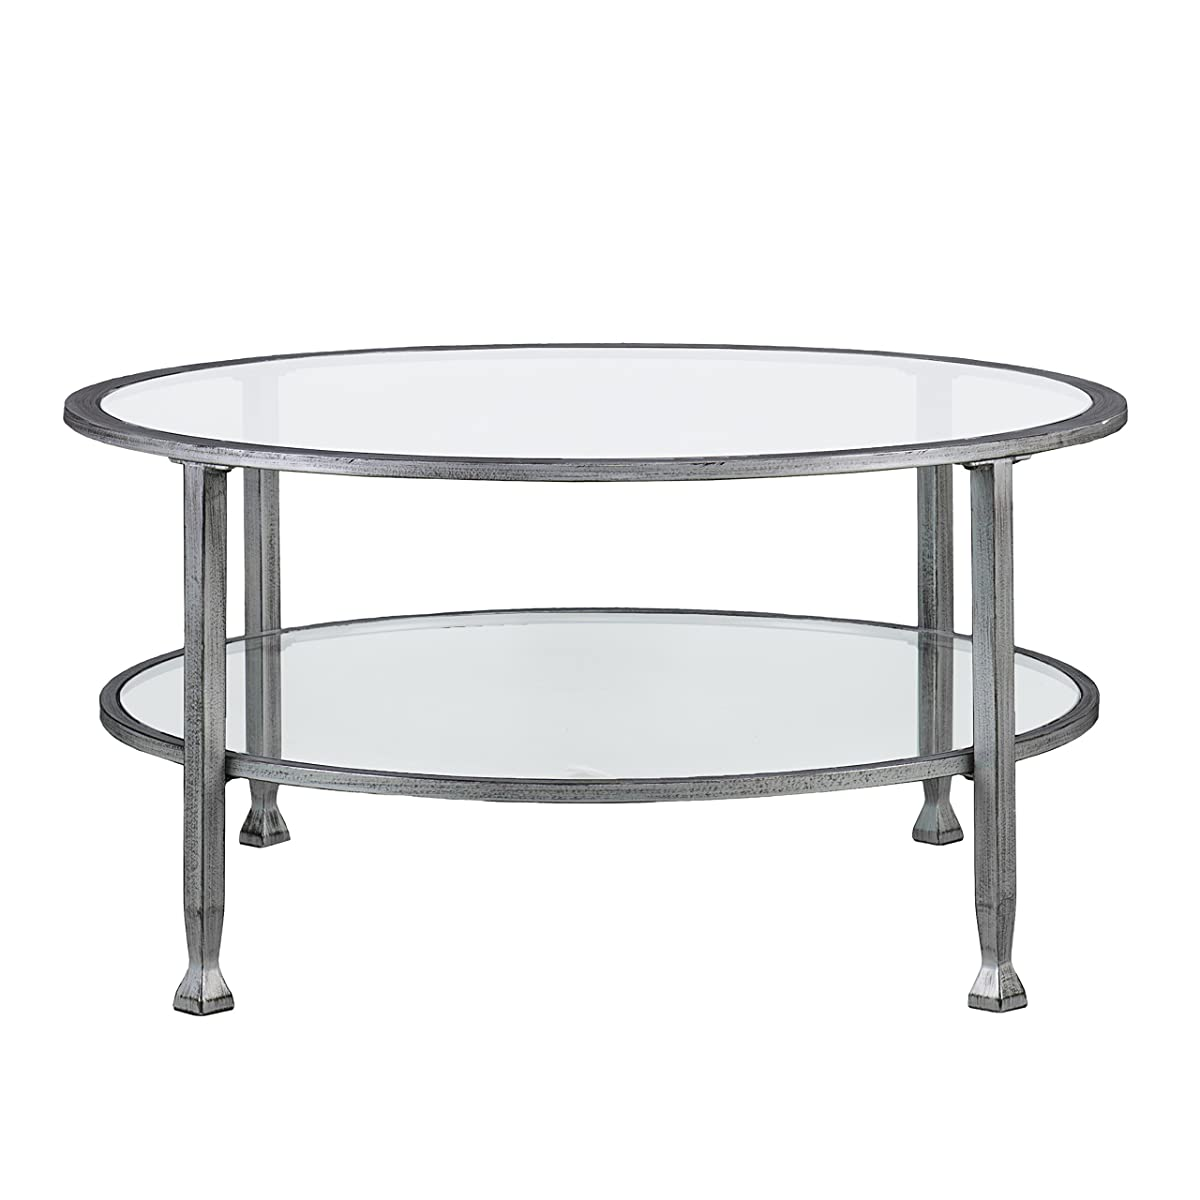 Jaymi Metal and Glass Round Cocktail Table, Silver